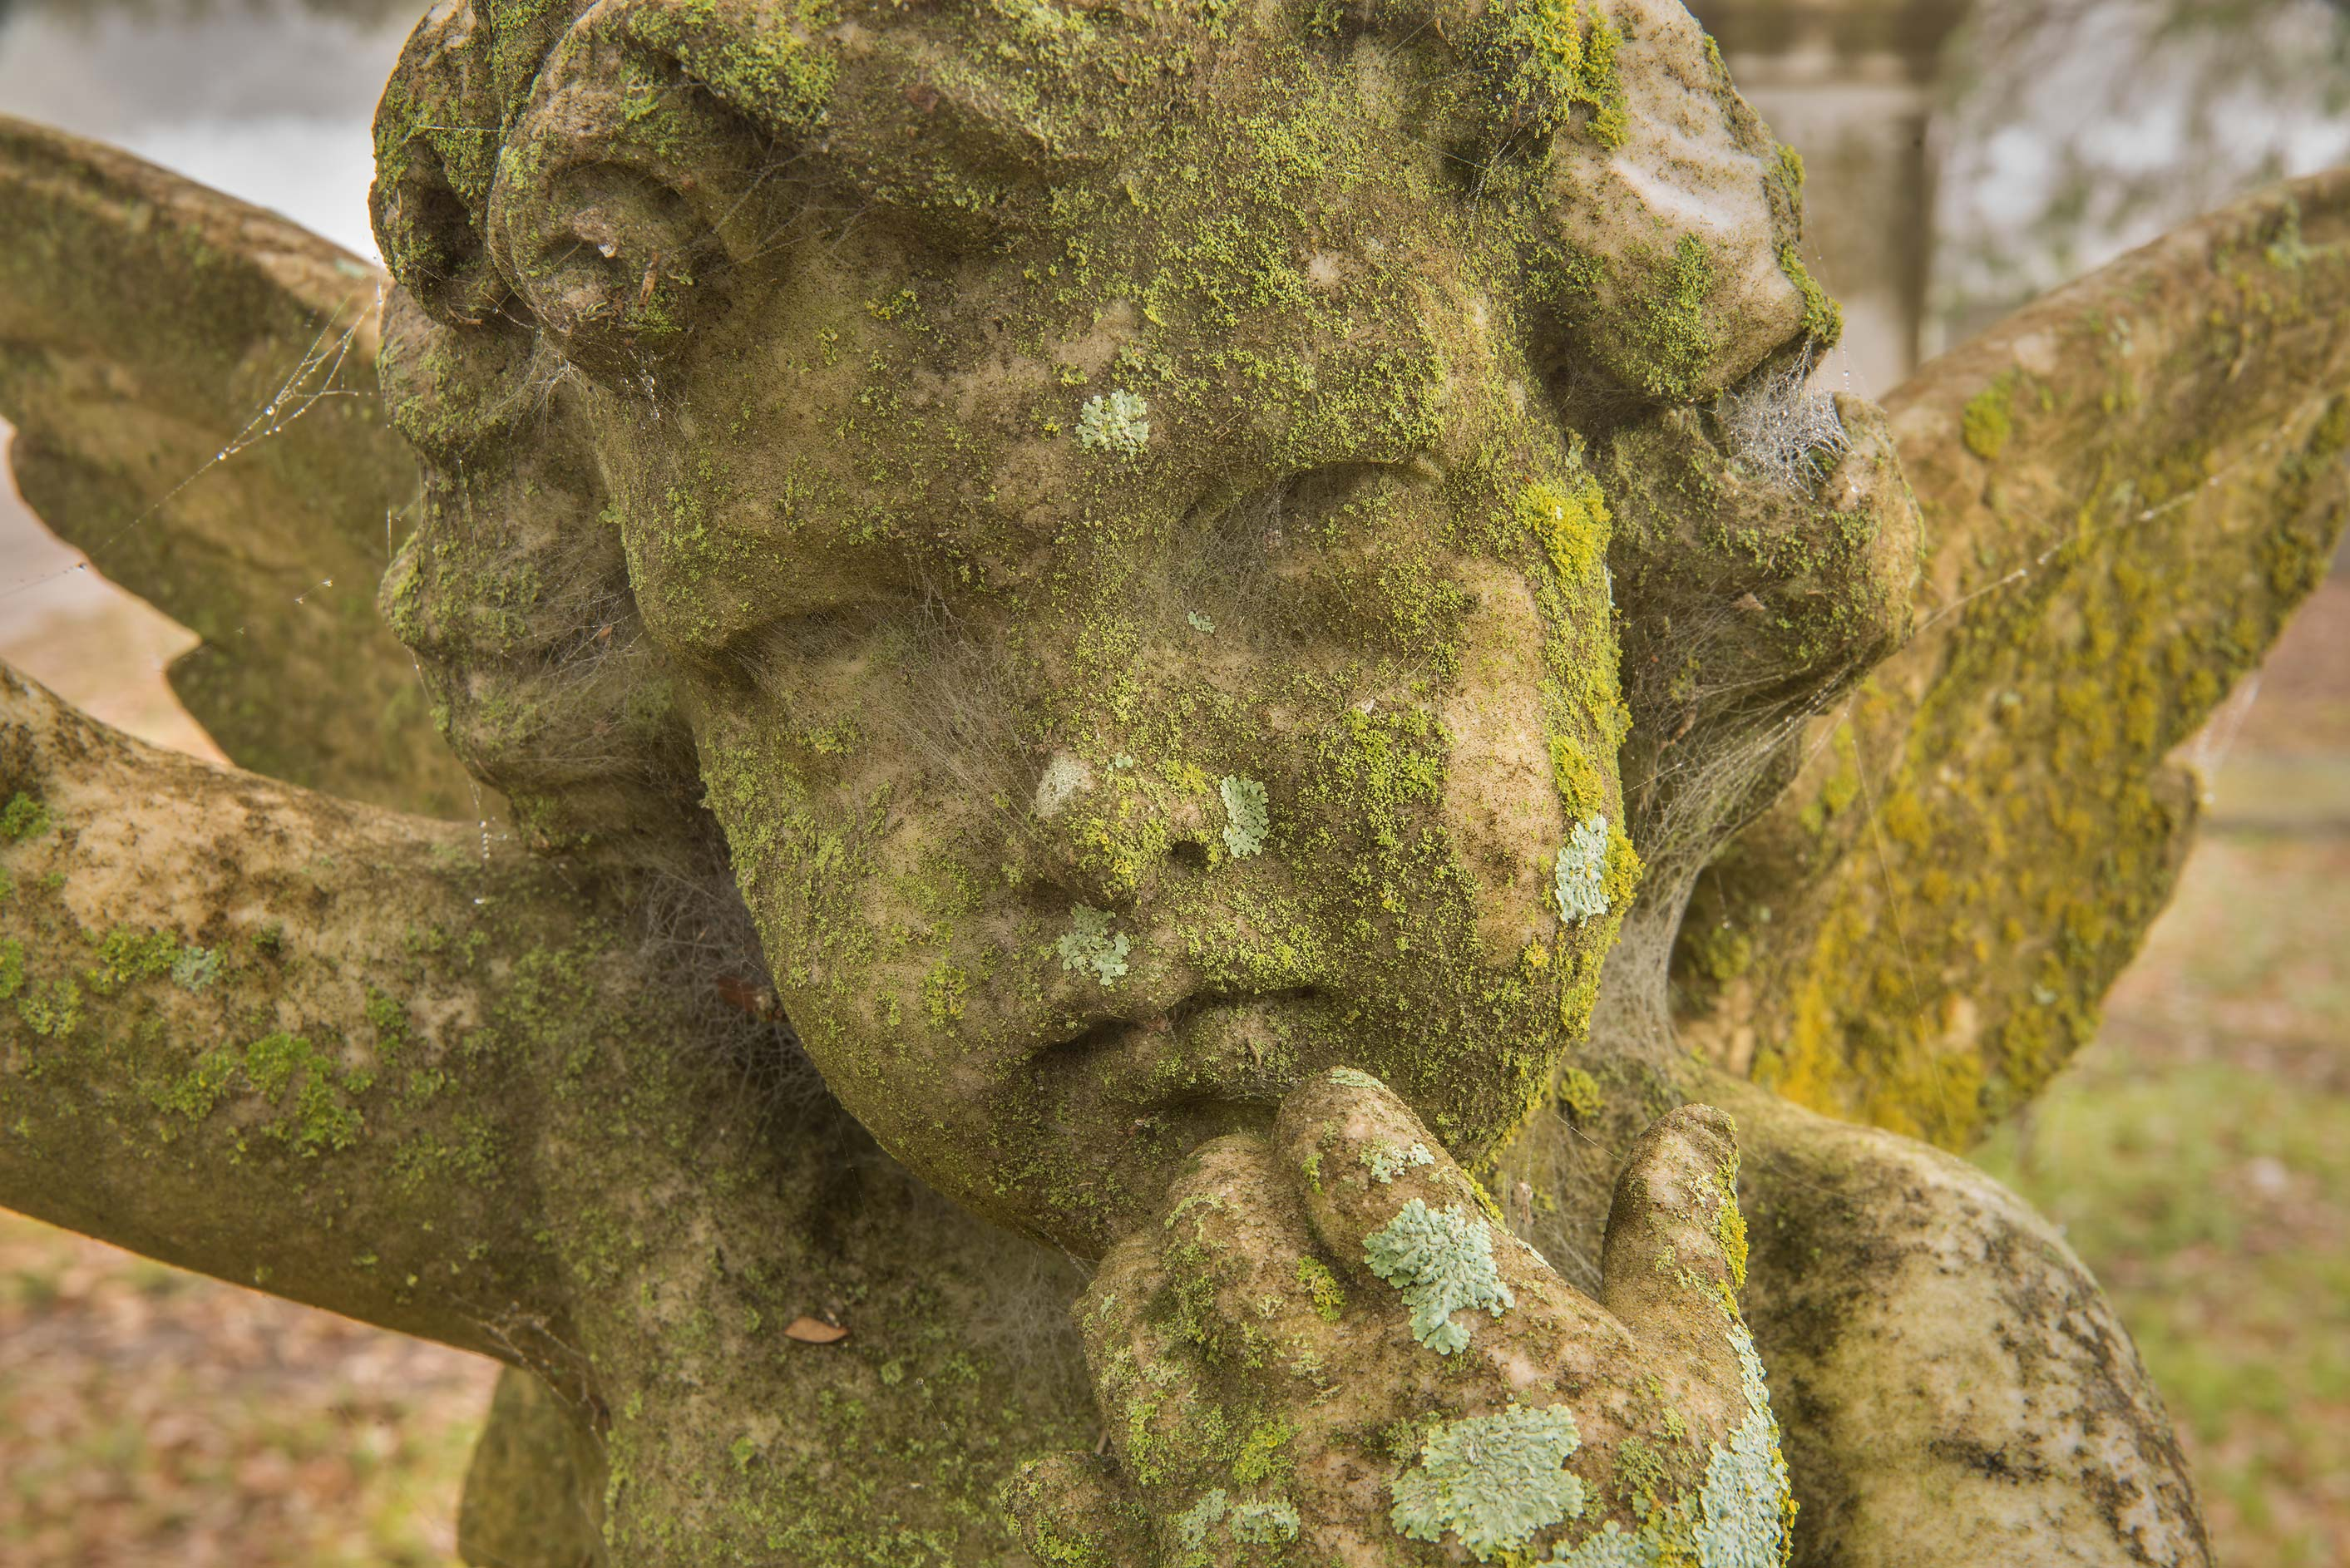 Angel with green lichens in City Cemetery. Bryan, Texas